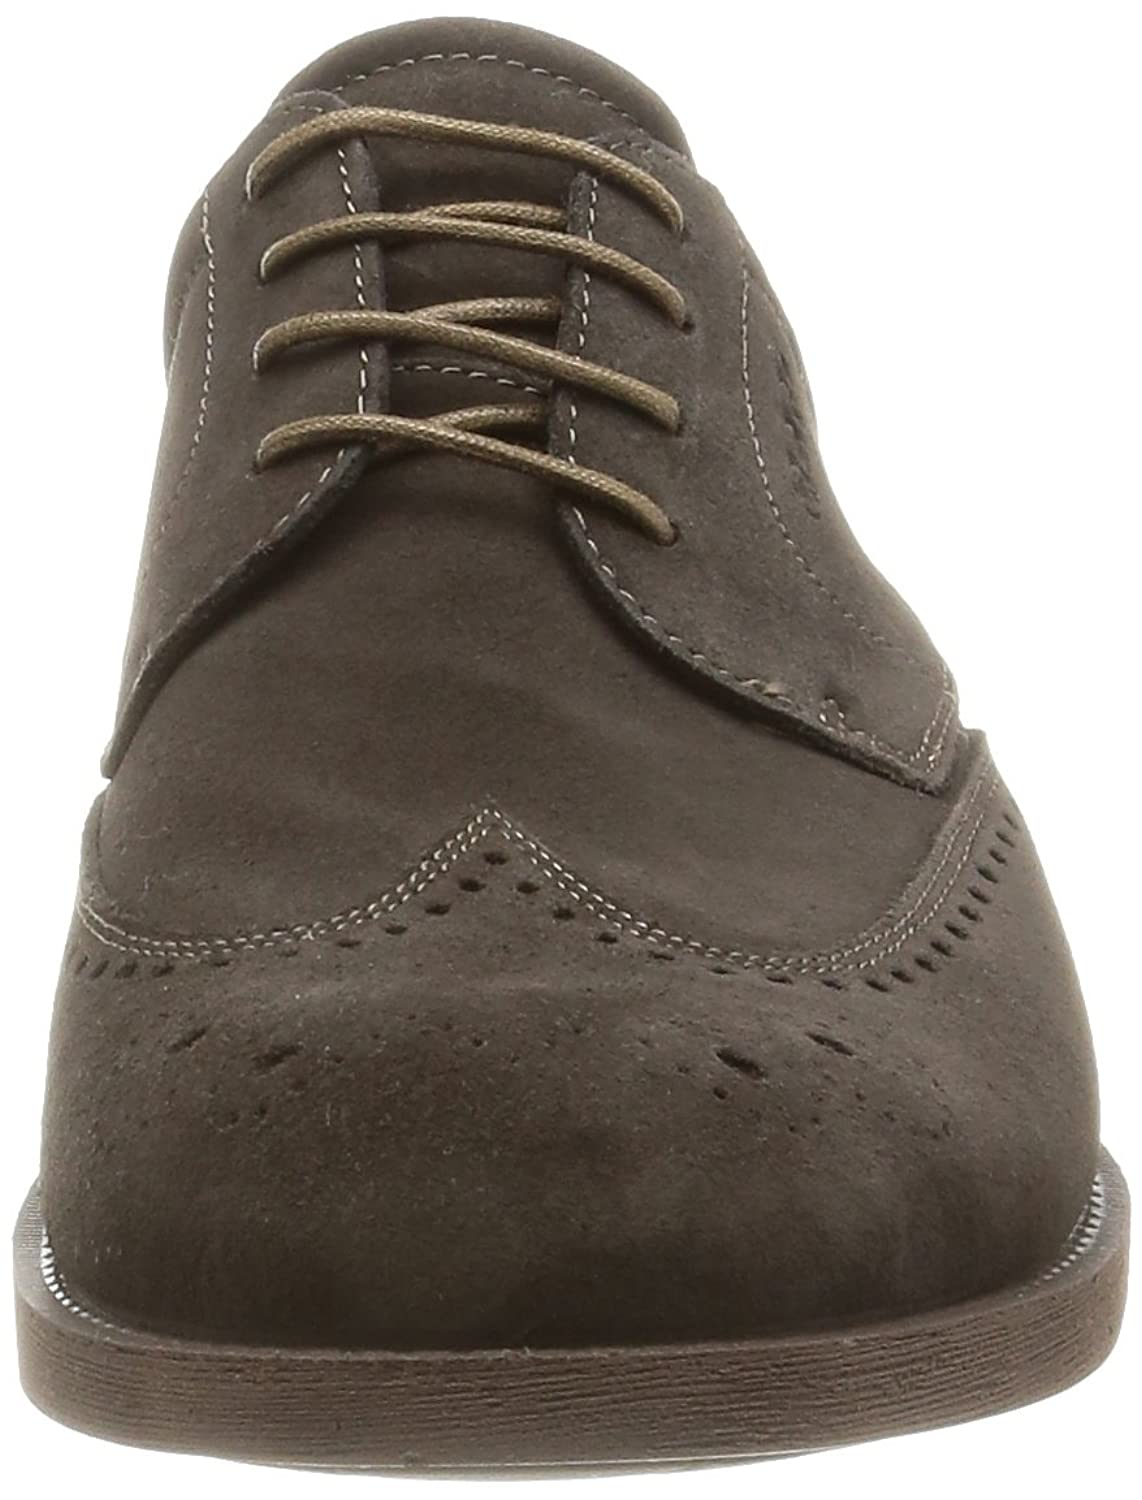 ecco men's birmingham wingtip oxford